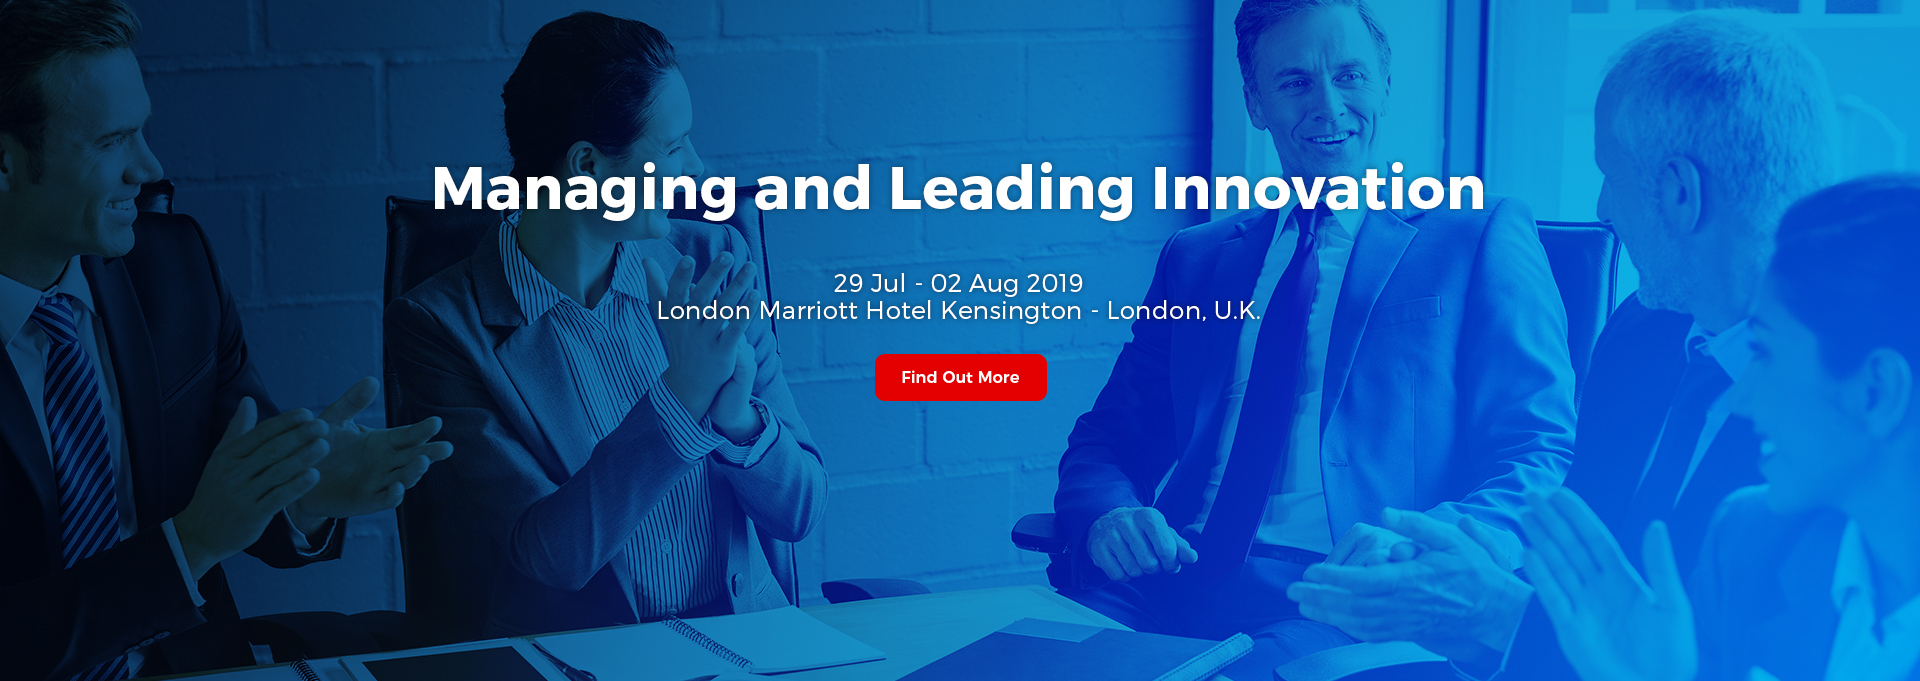 Managing and Leading Innovation